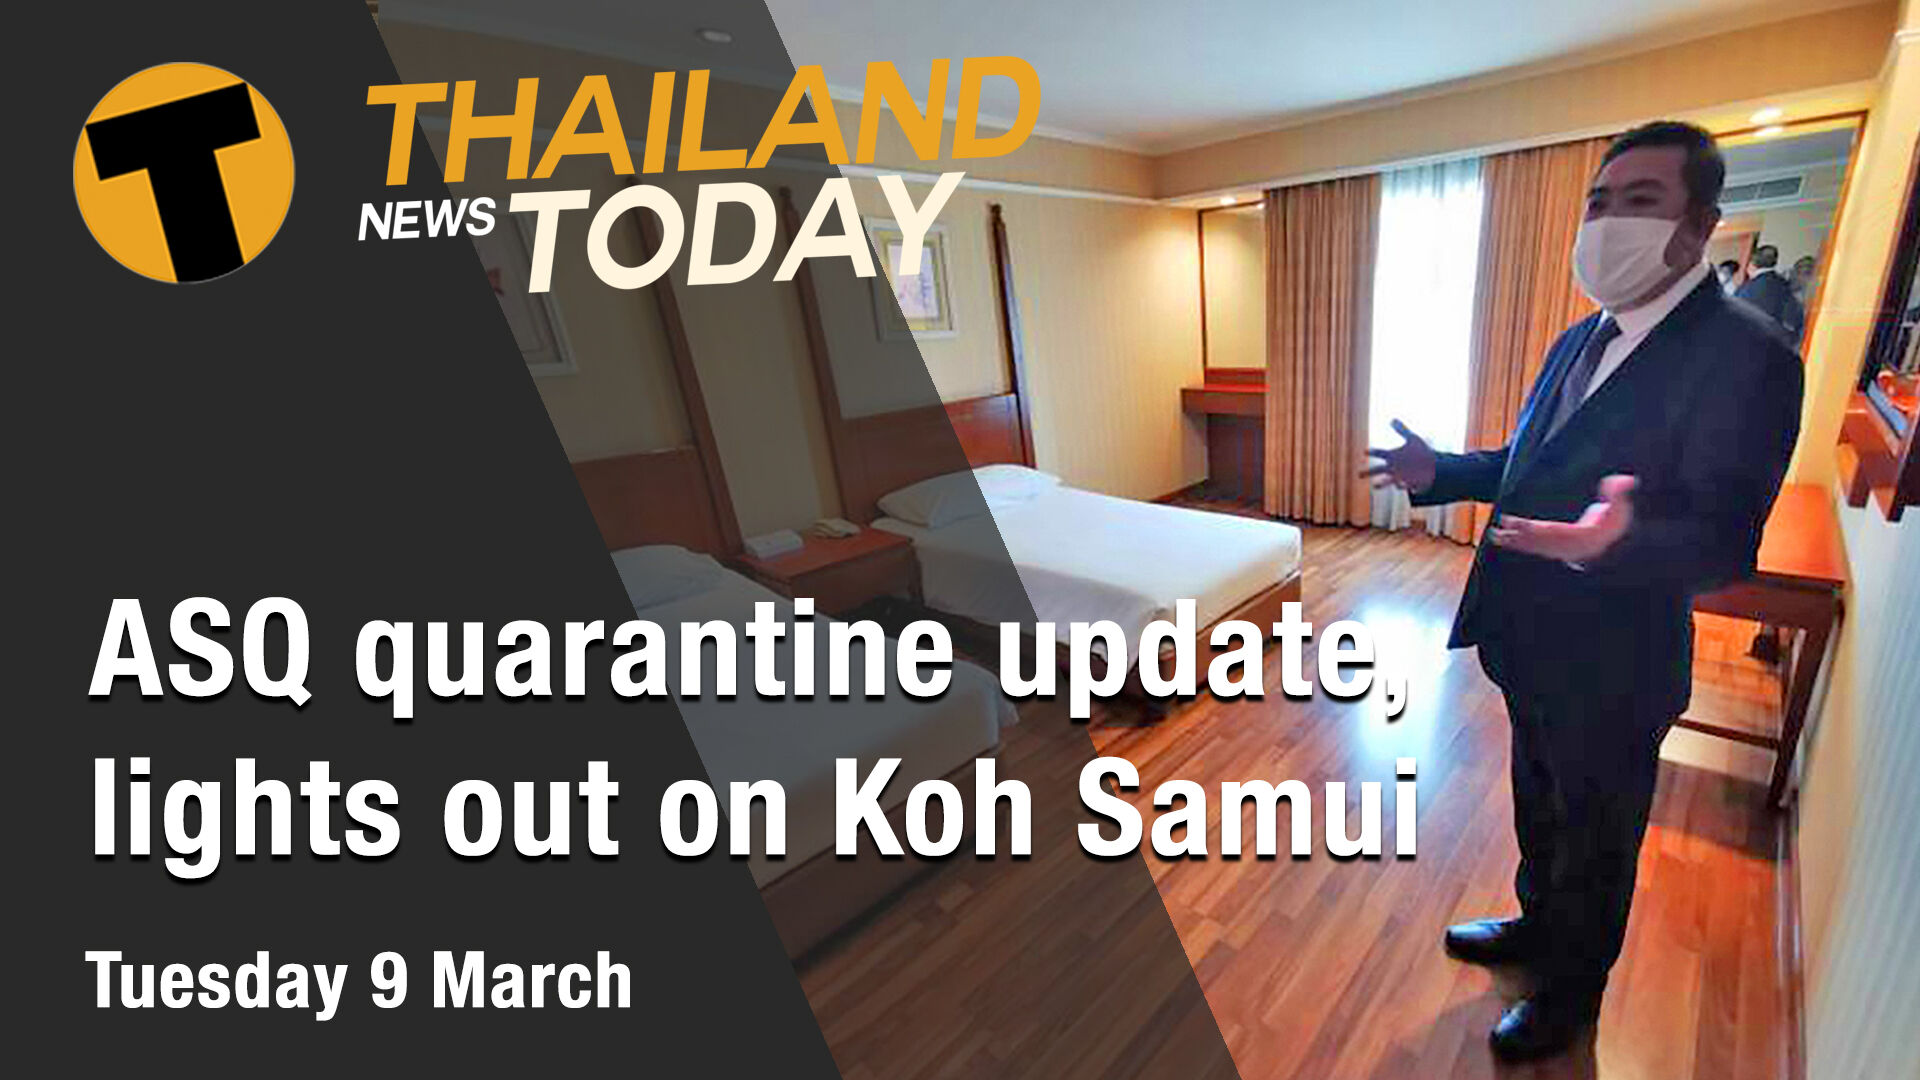 Thailand News Today | ASQ quarantine update, lights out on Koh Samui | March 9 | Thaiger